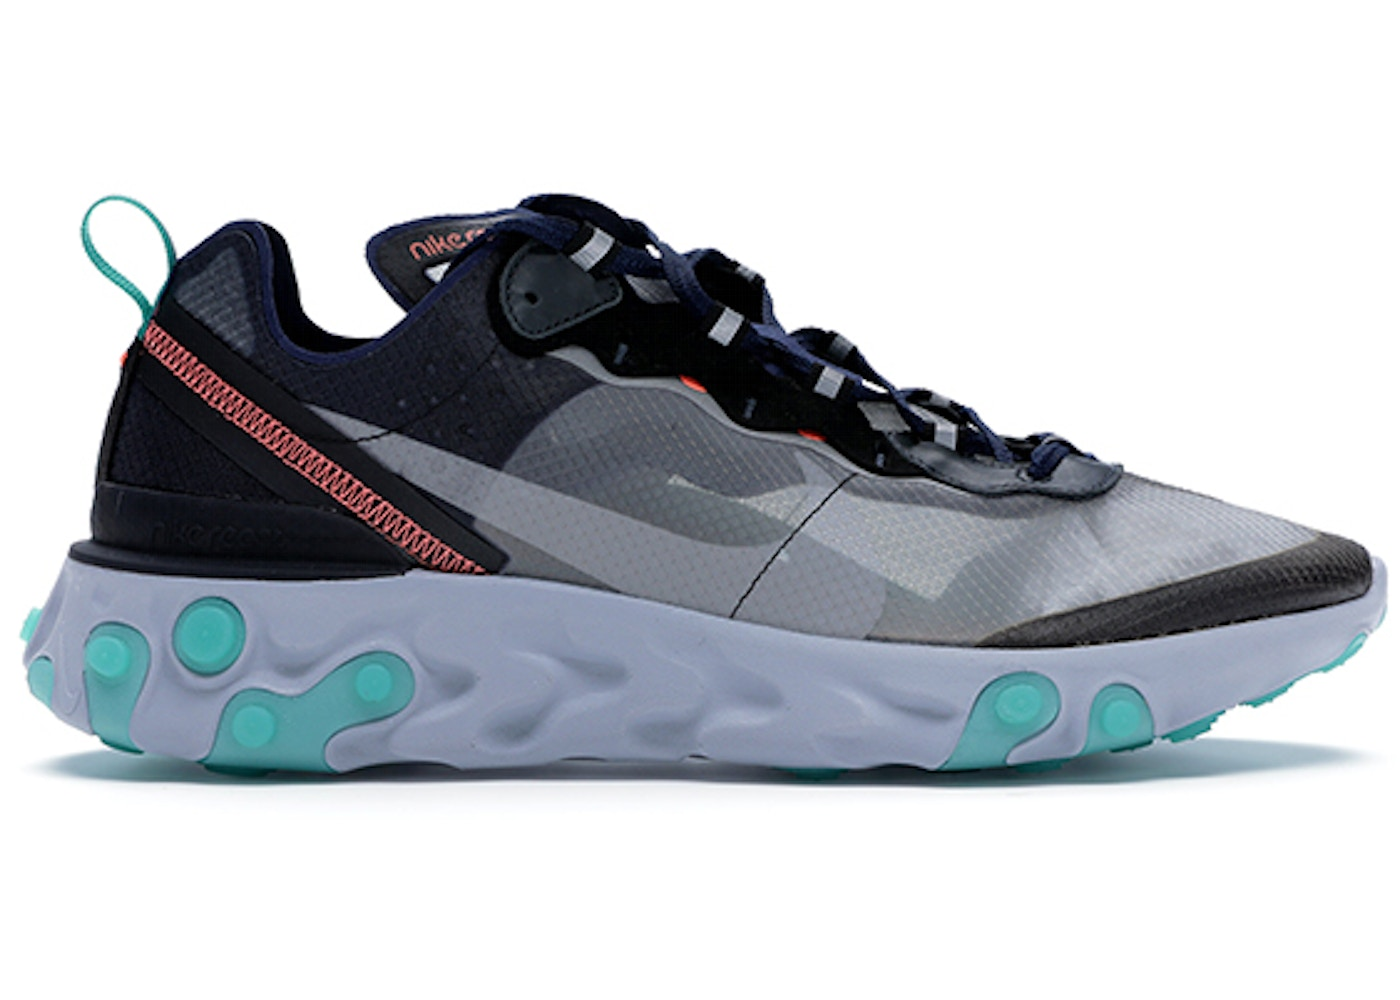 0c83a791ddc31 Nike React Element 87 Black Neptune Green